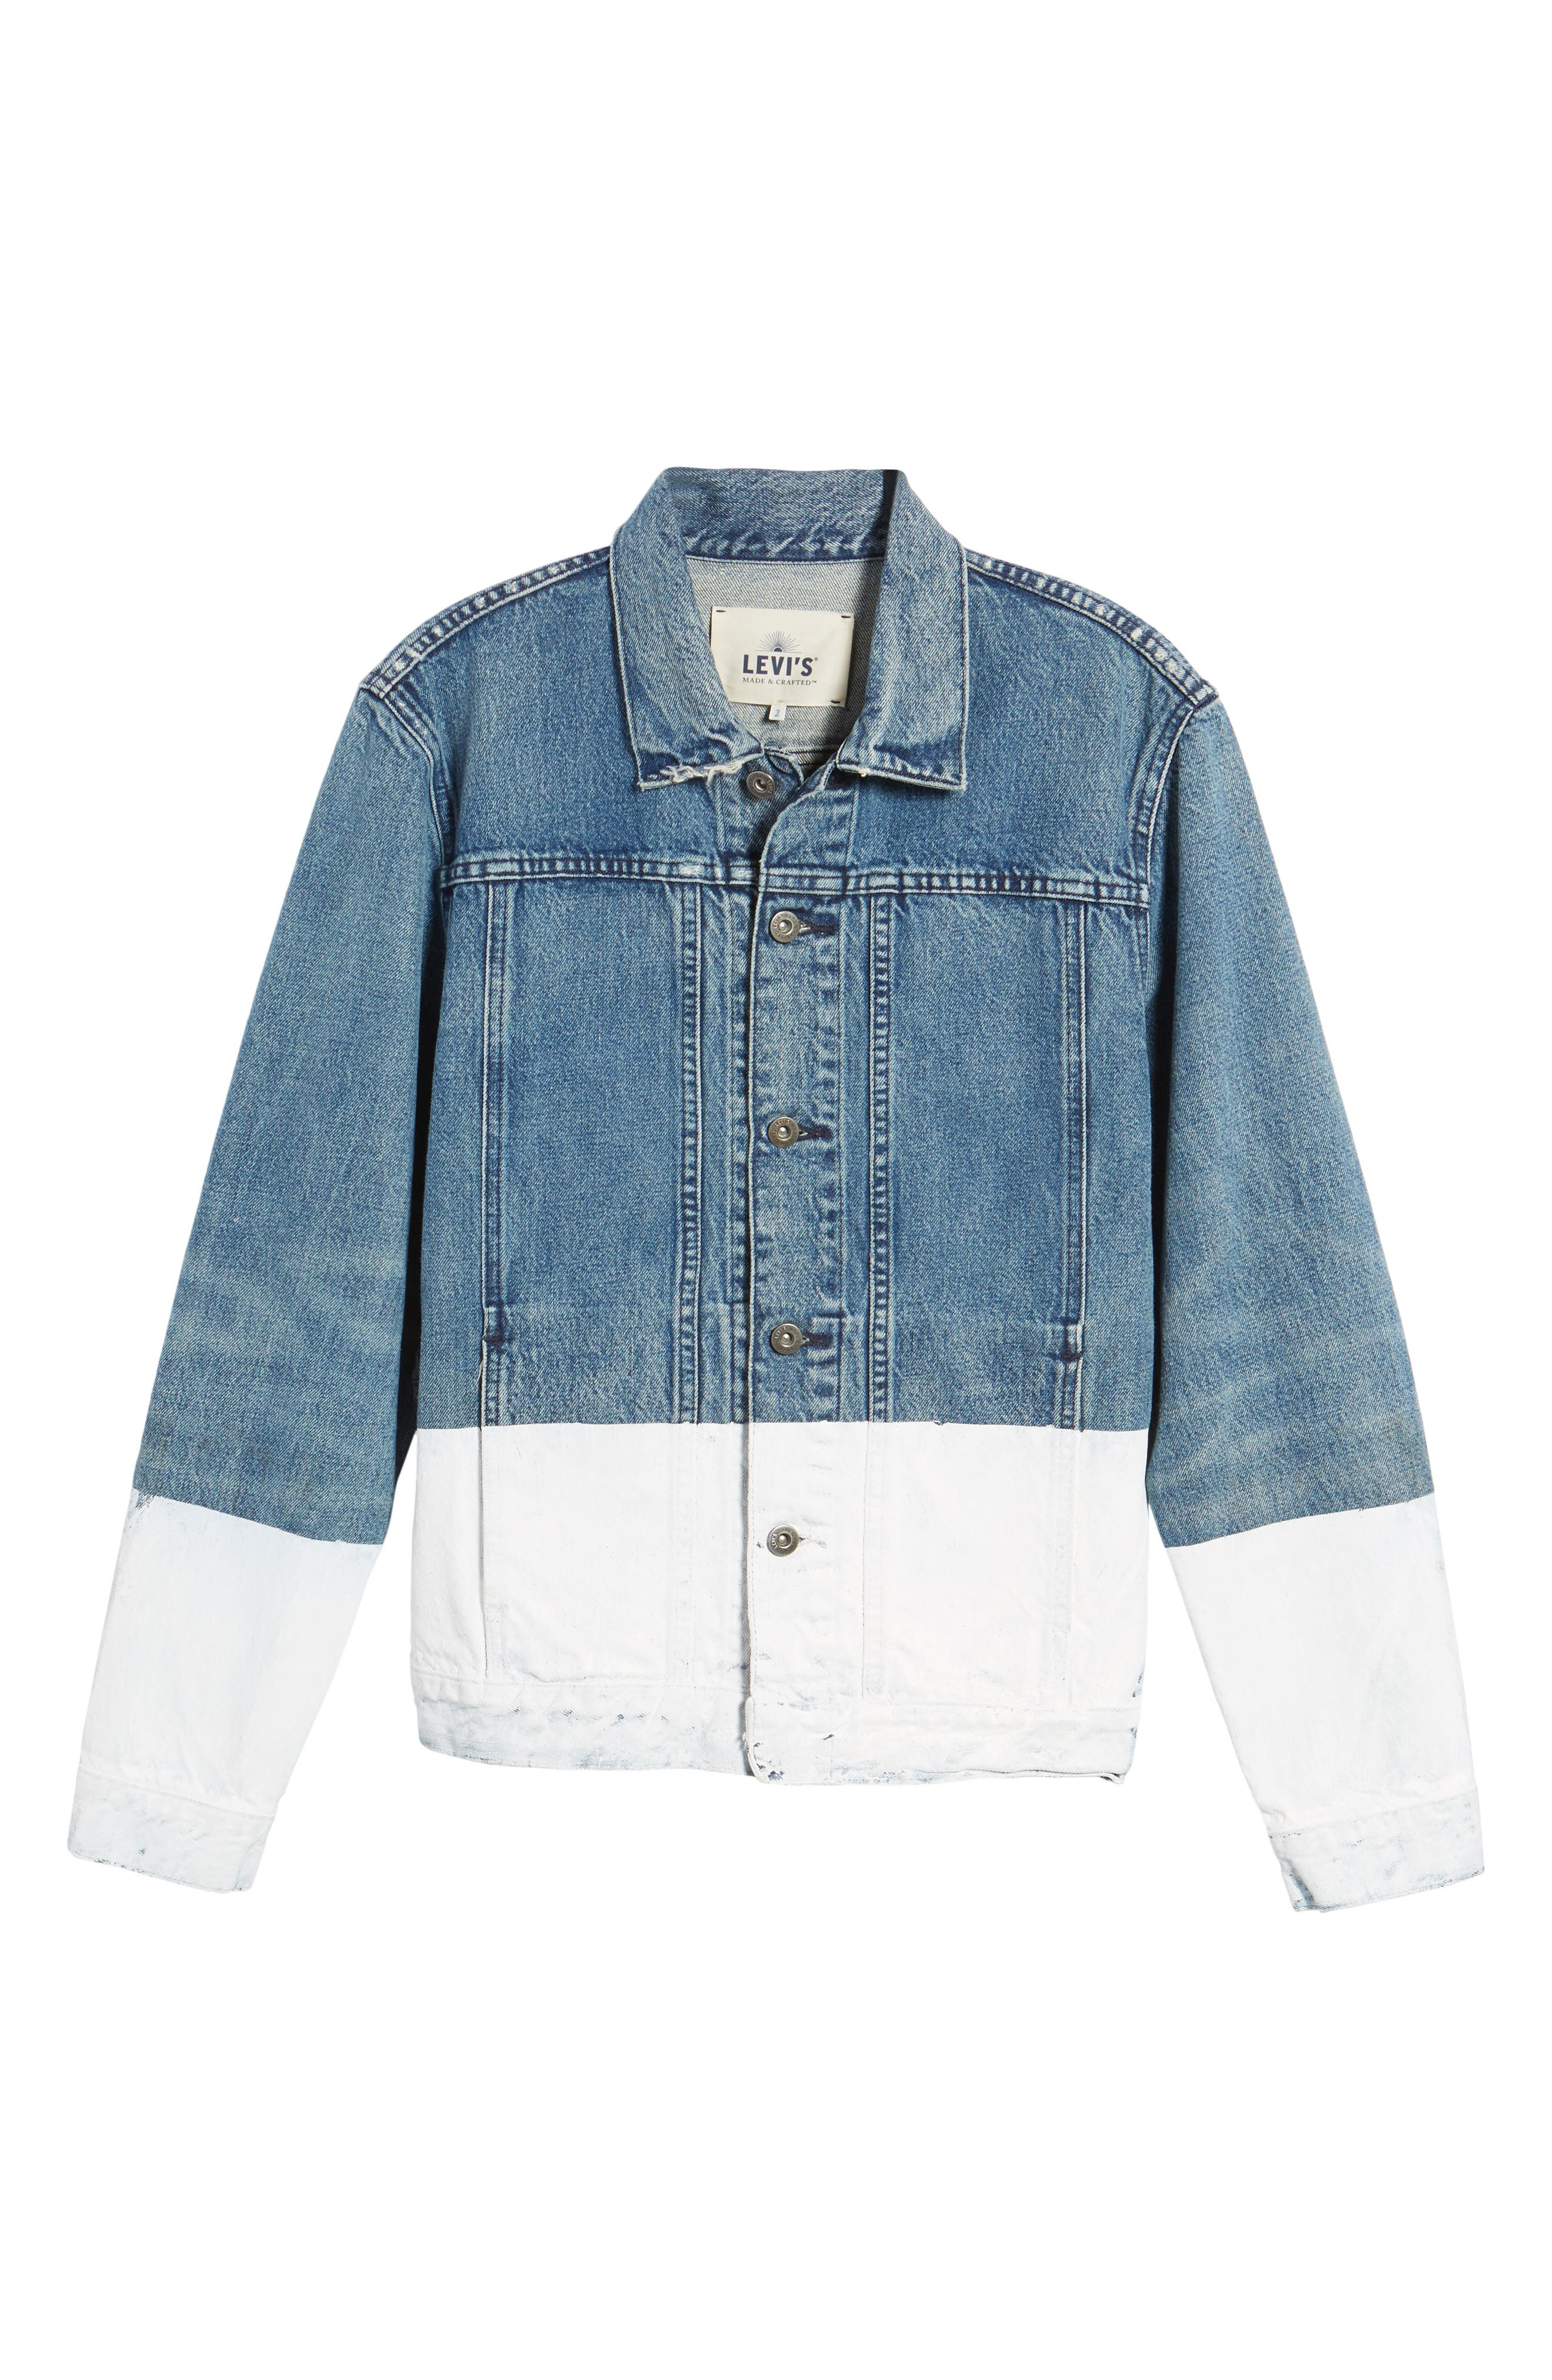 LEVI'S<SUP>®</SUP> MADE & CRAFTED<SUP>™</SUP>,                             Type IV Trucker Standard Fit Denim Jacket,                             Alternate thumbnail 5, color,                             420